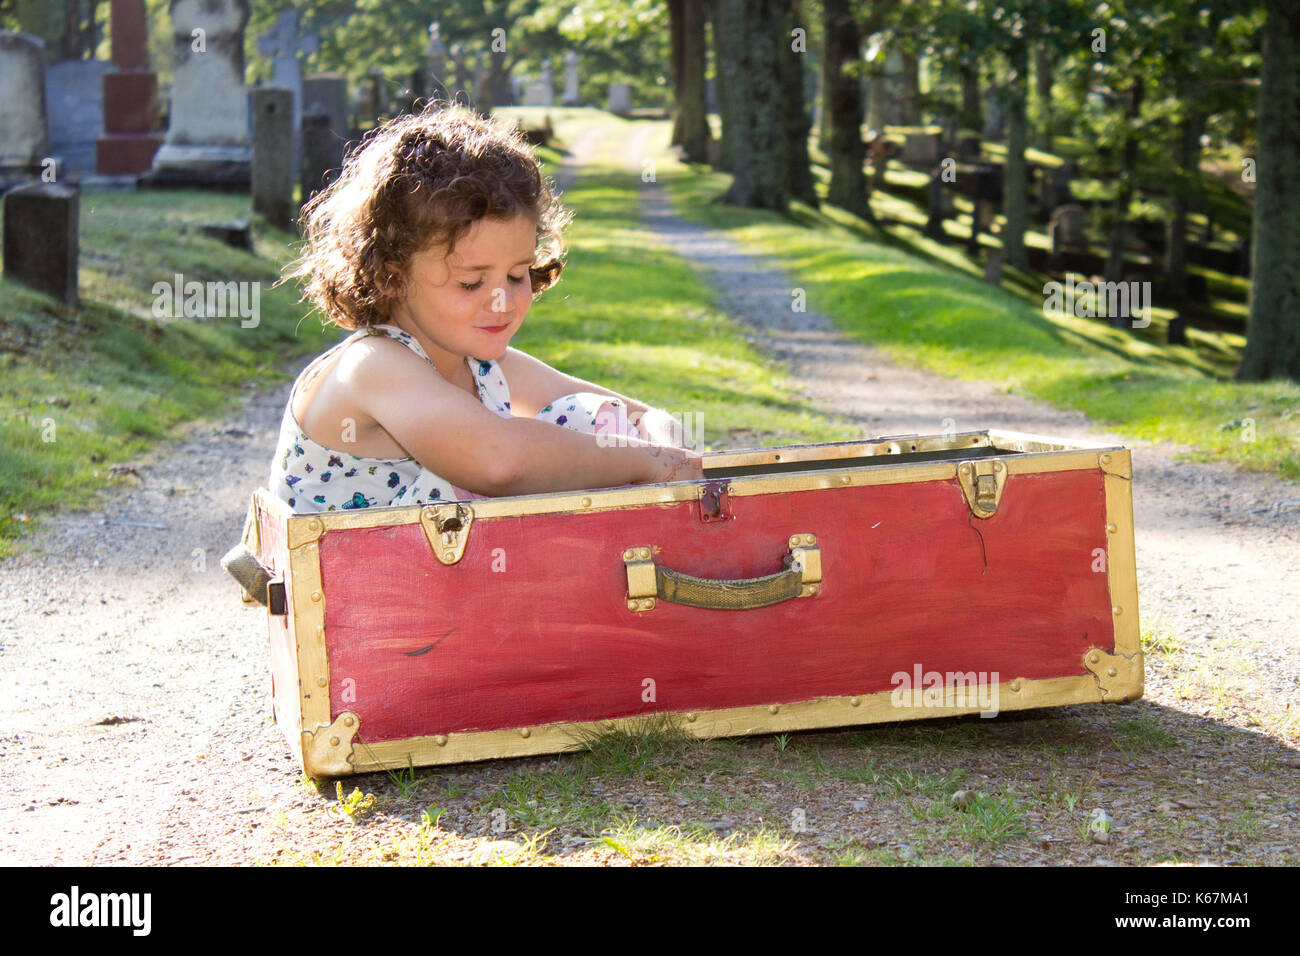 a small lonely girl in a red box in a cemetery - Stock Image